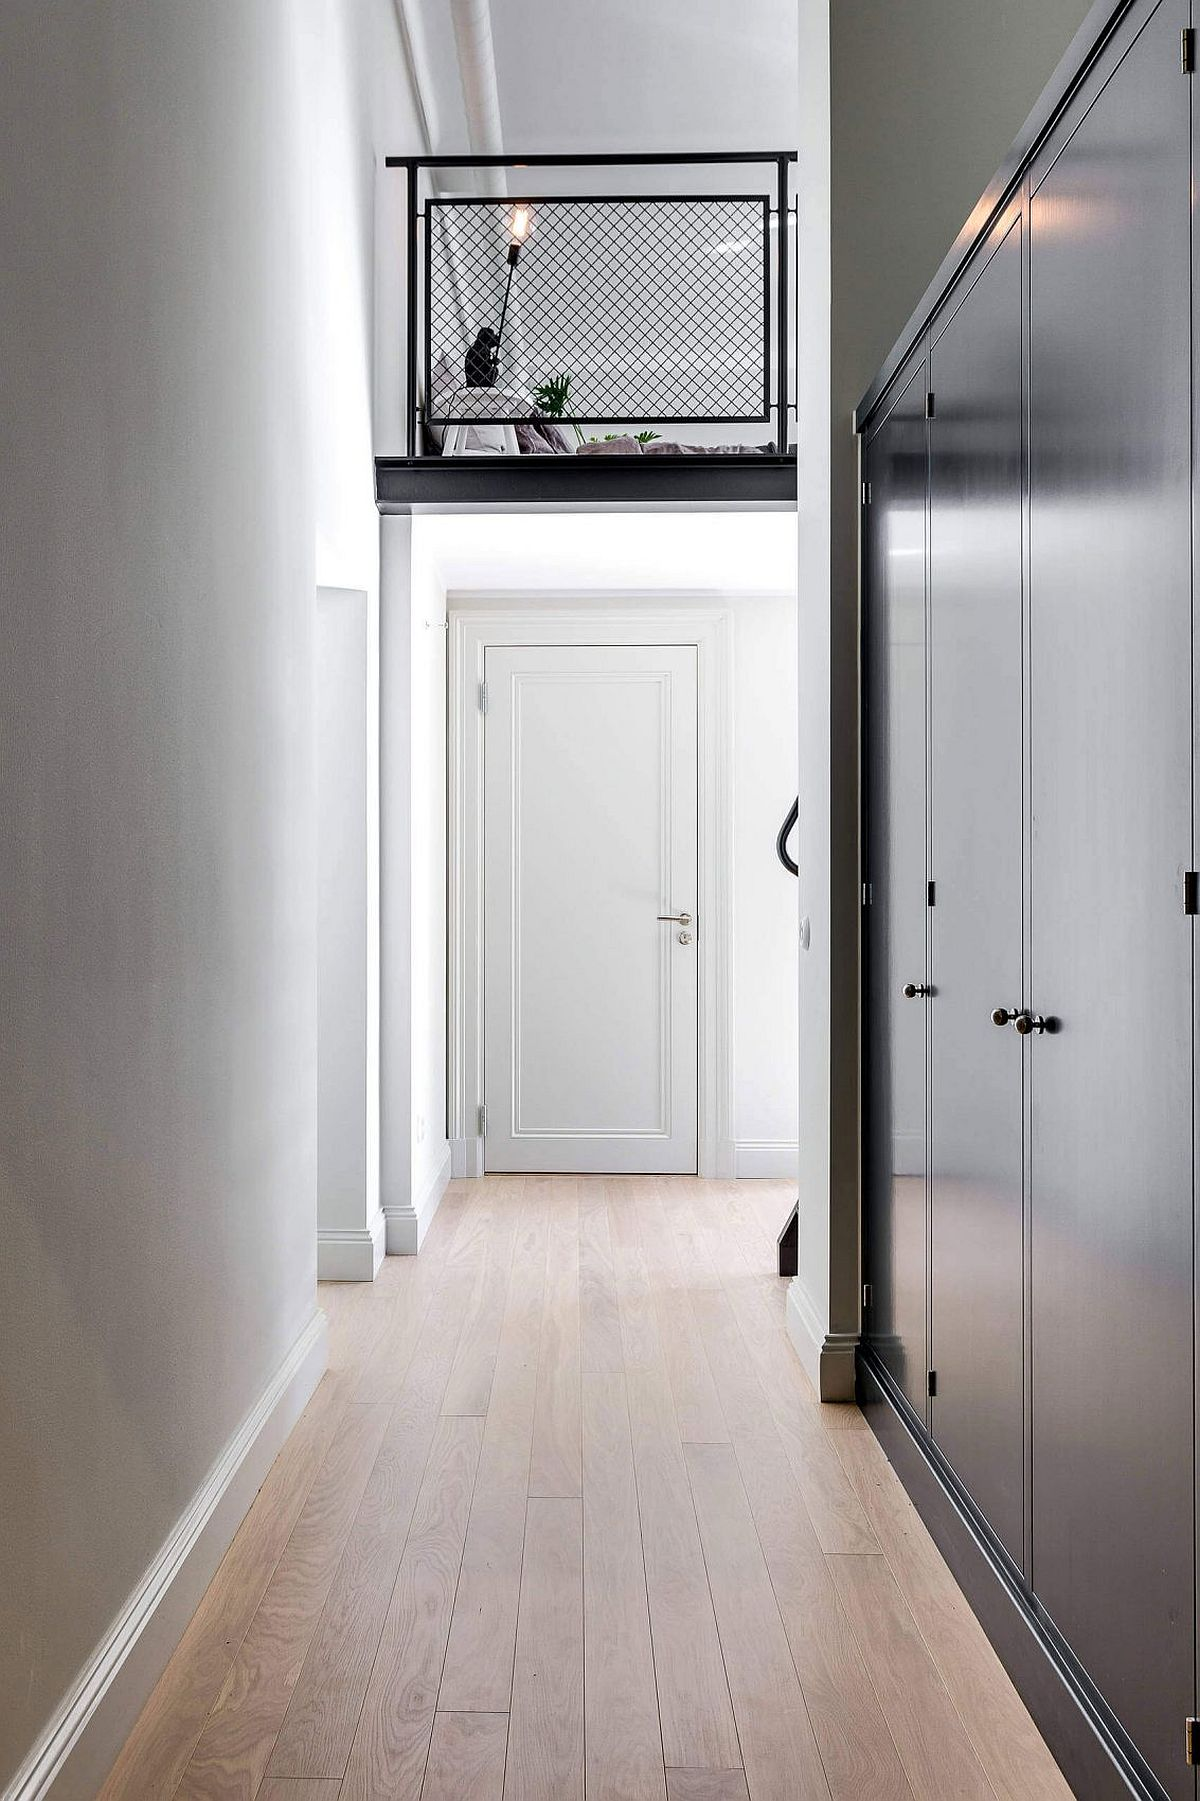 Entry to the modern Scandinavian apartment in Stockholm